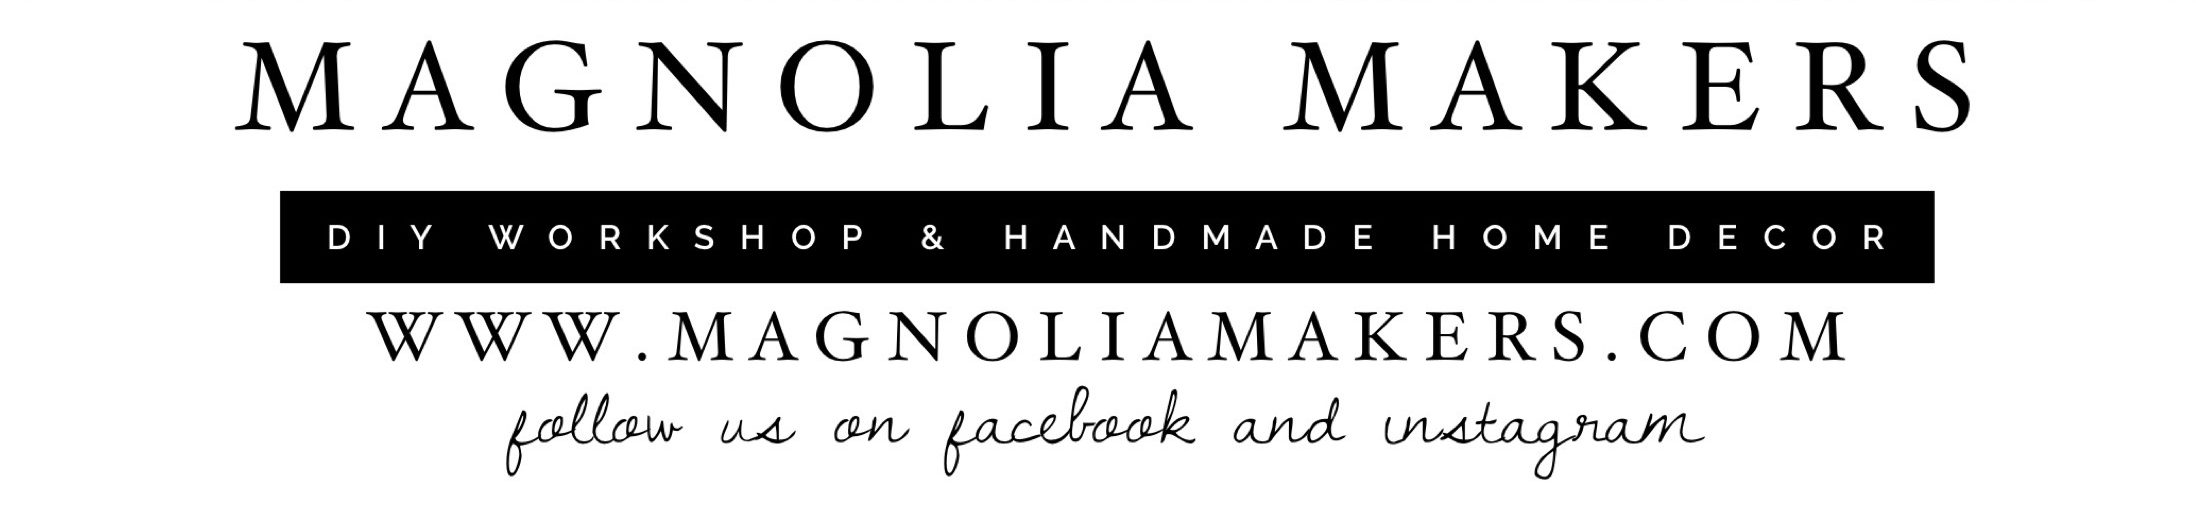 Magnolia Makers